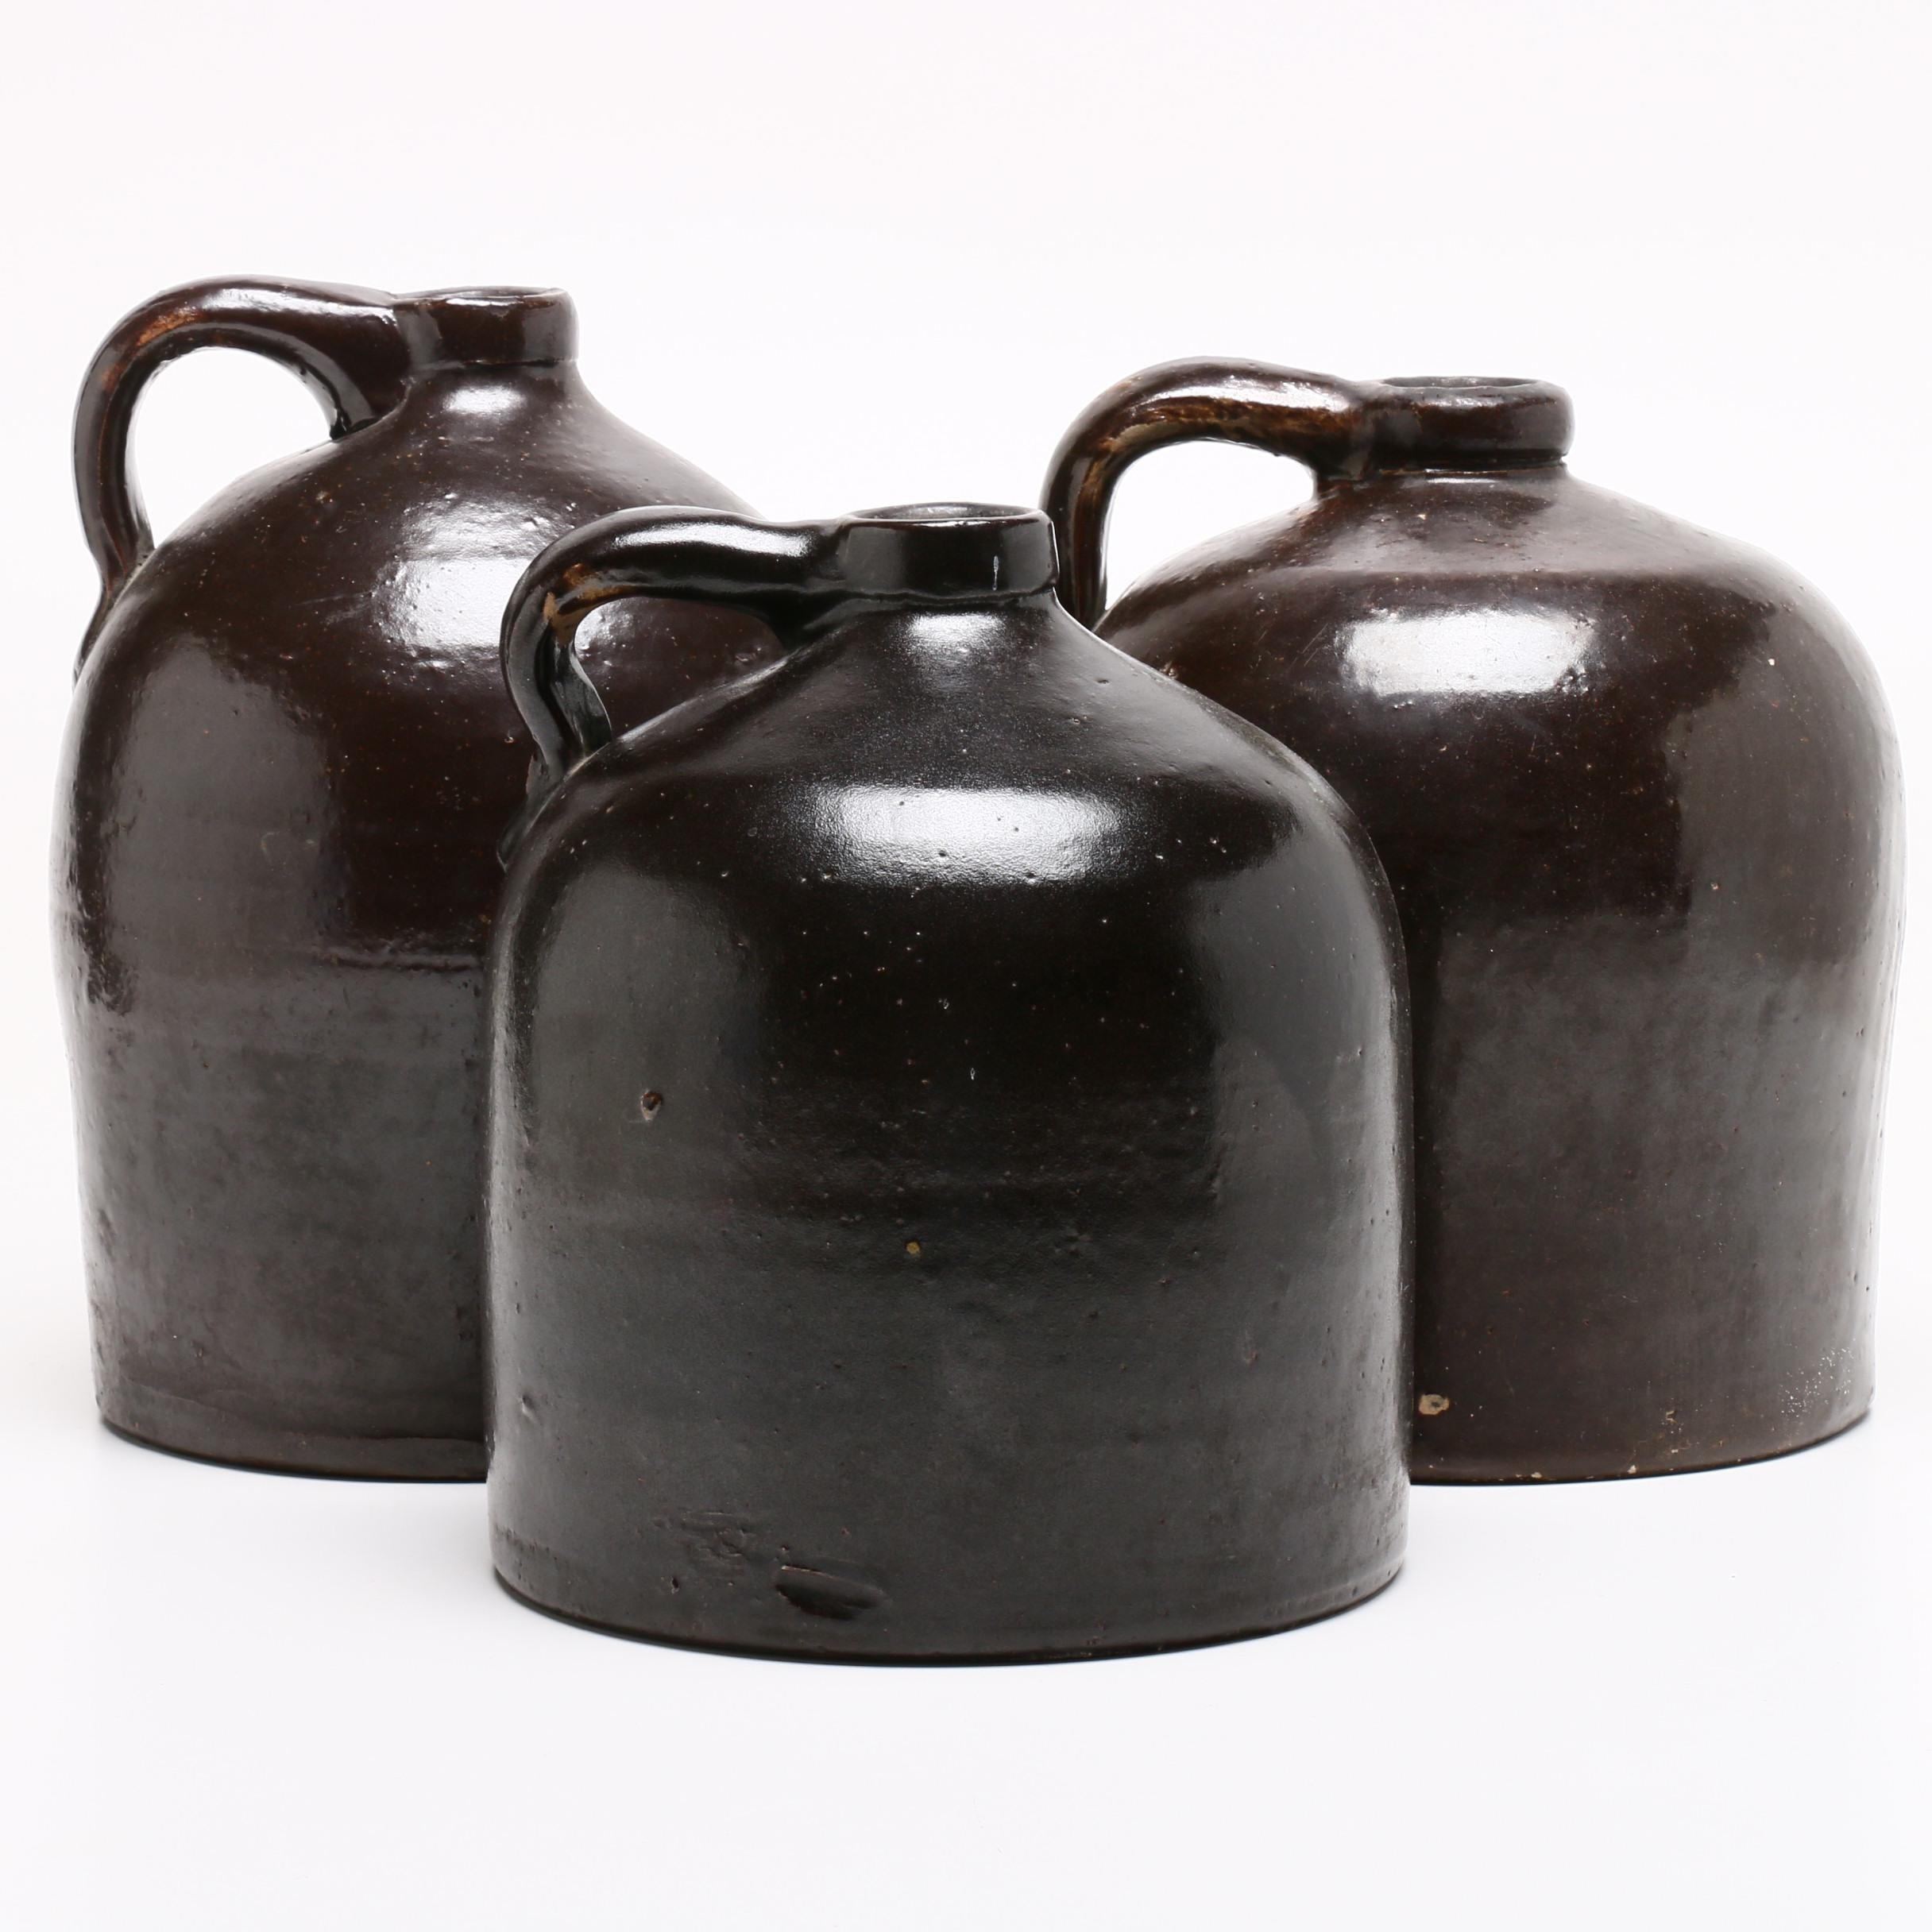 Albany Slip Salt Glazed Stoneware Jugs, Late 19th Century